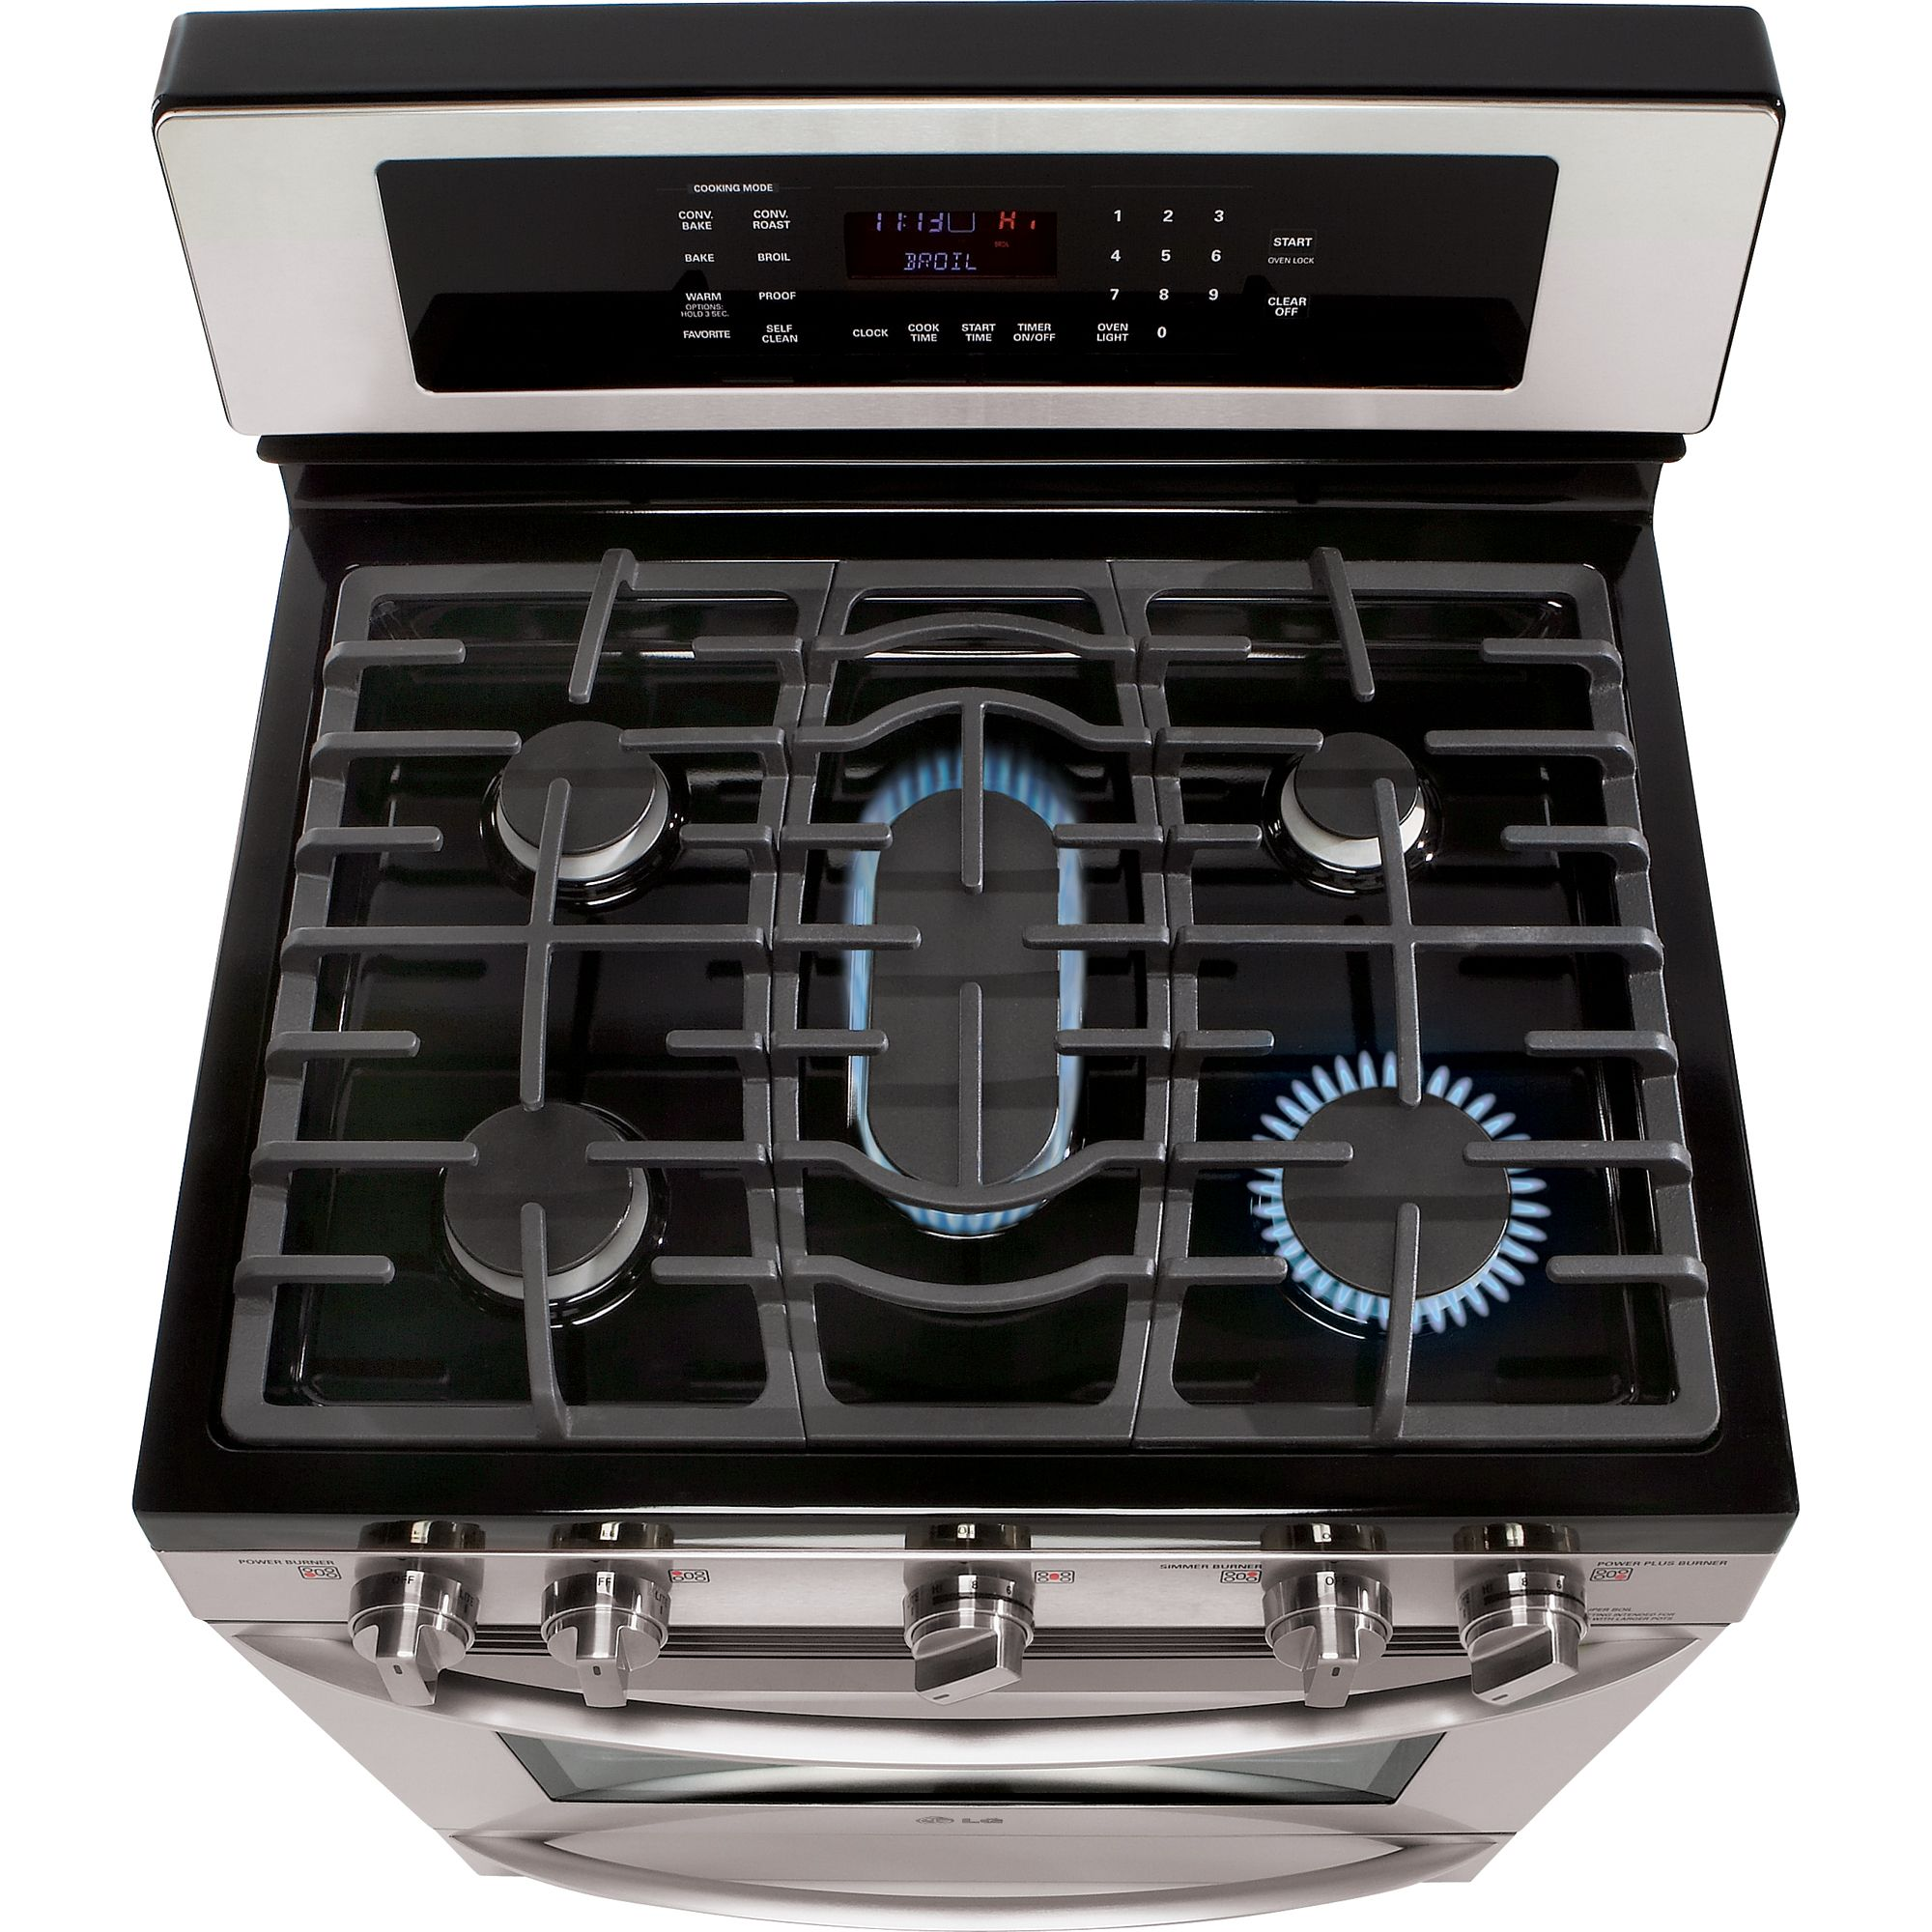 LG 5.4 cu. ft. Freestanding Gas Range-Stainless Steel